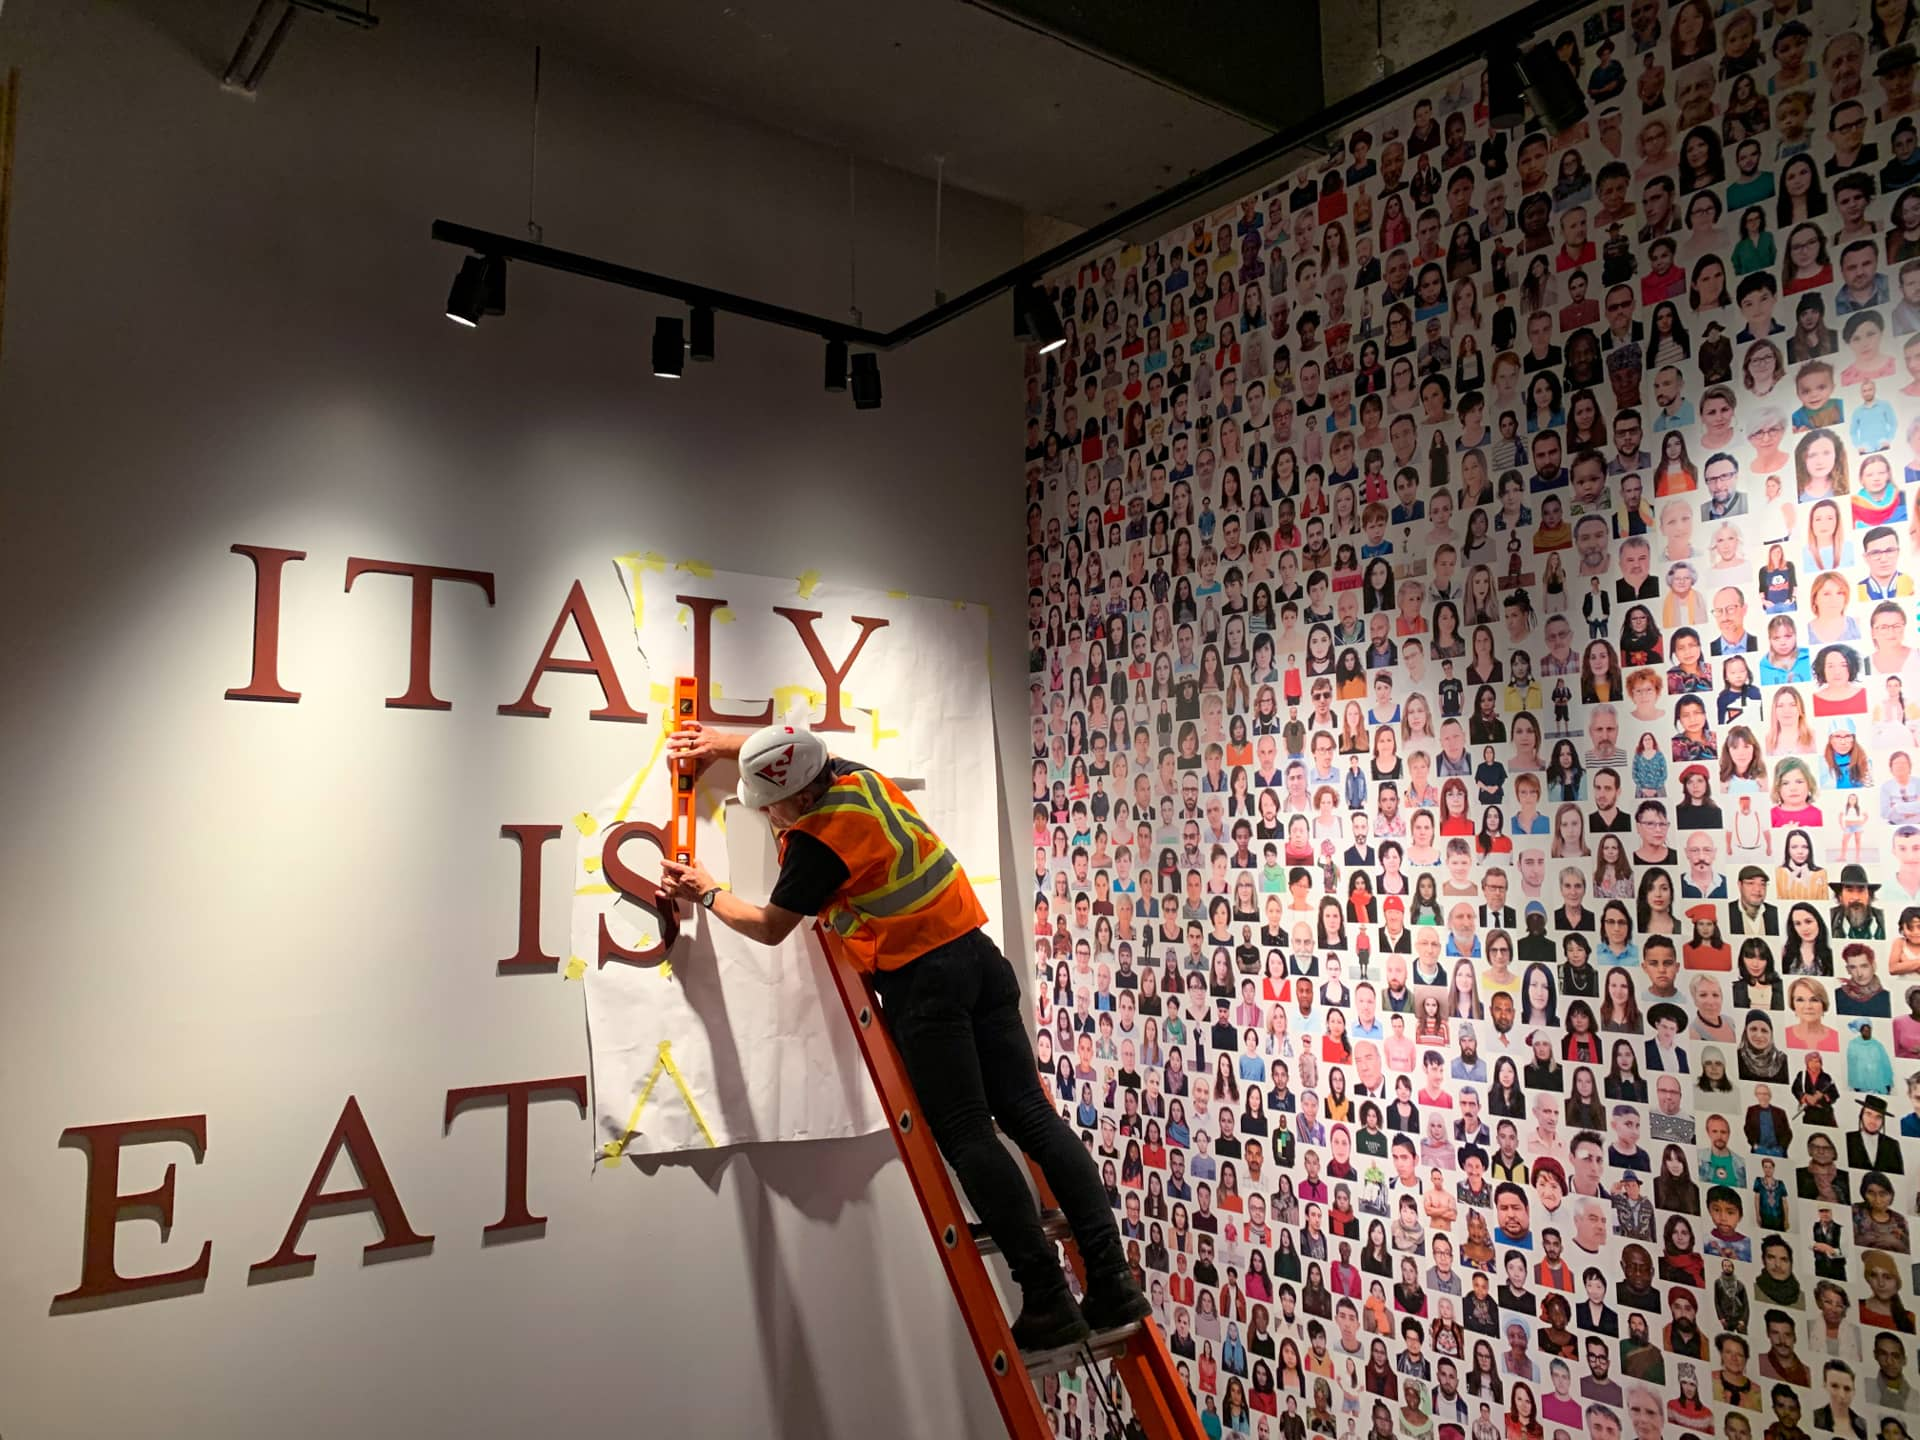 Eataly Sign installation by Signarama Toronto